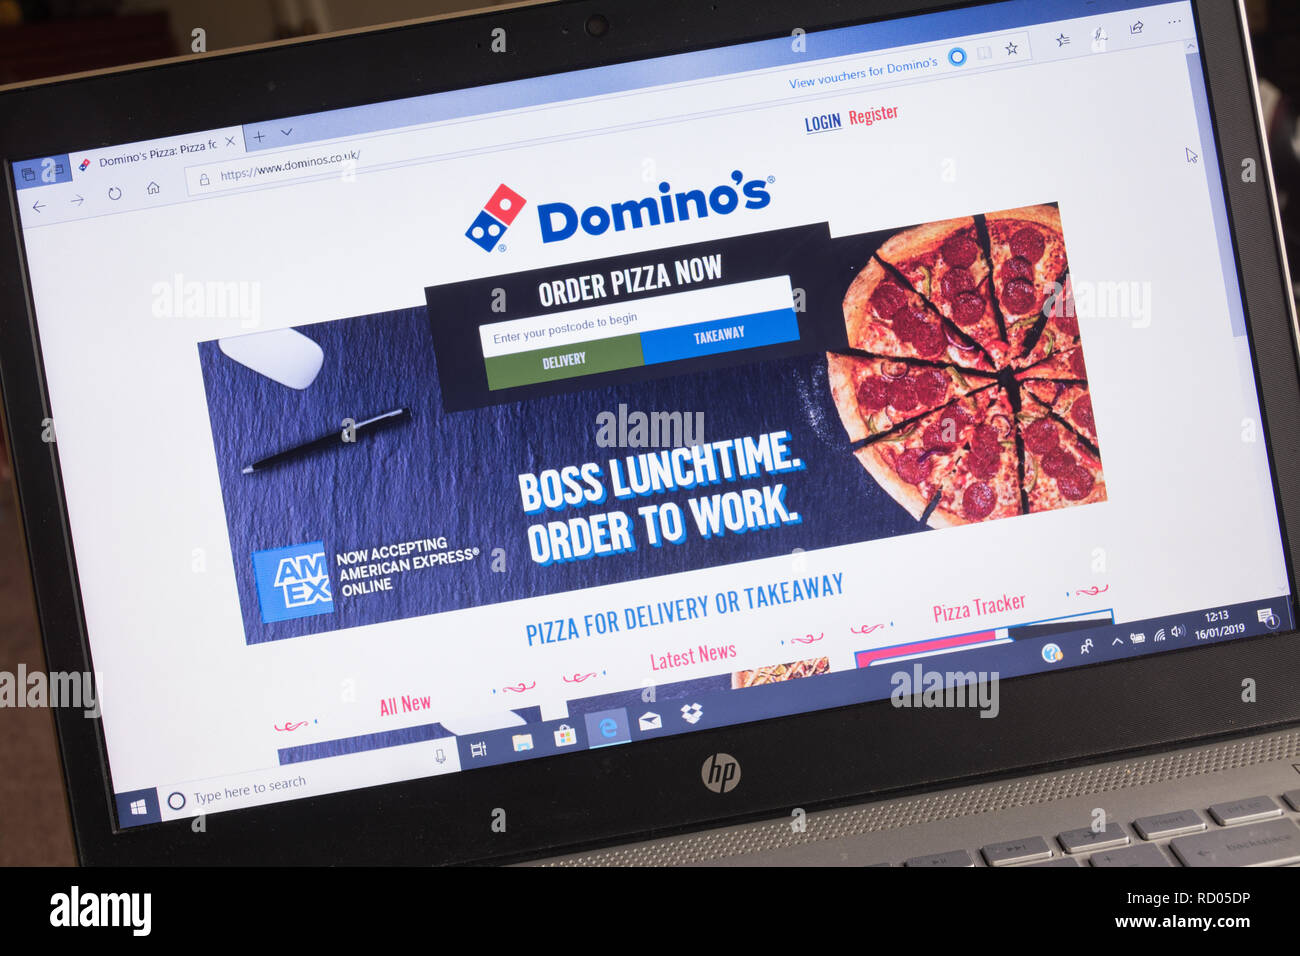 Domino's pizza website screenshot on laptop computer. Advert for takeaway fast food - Stock Image